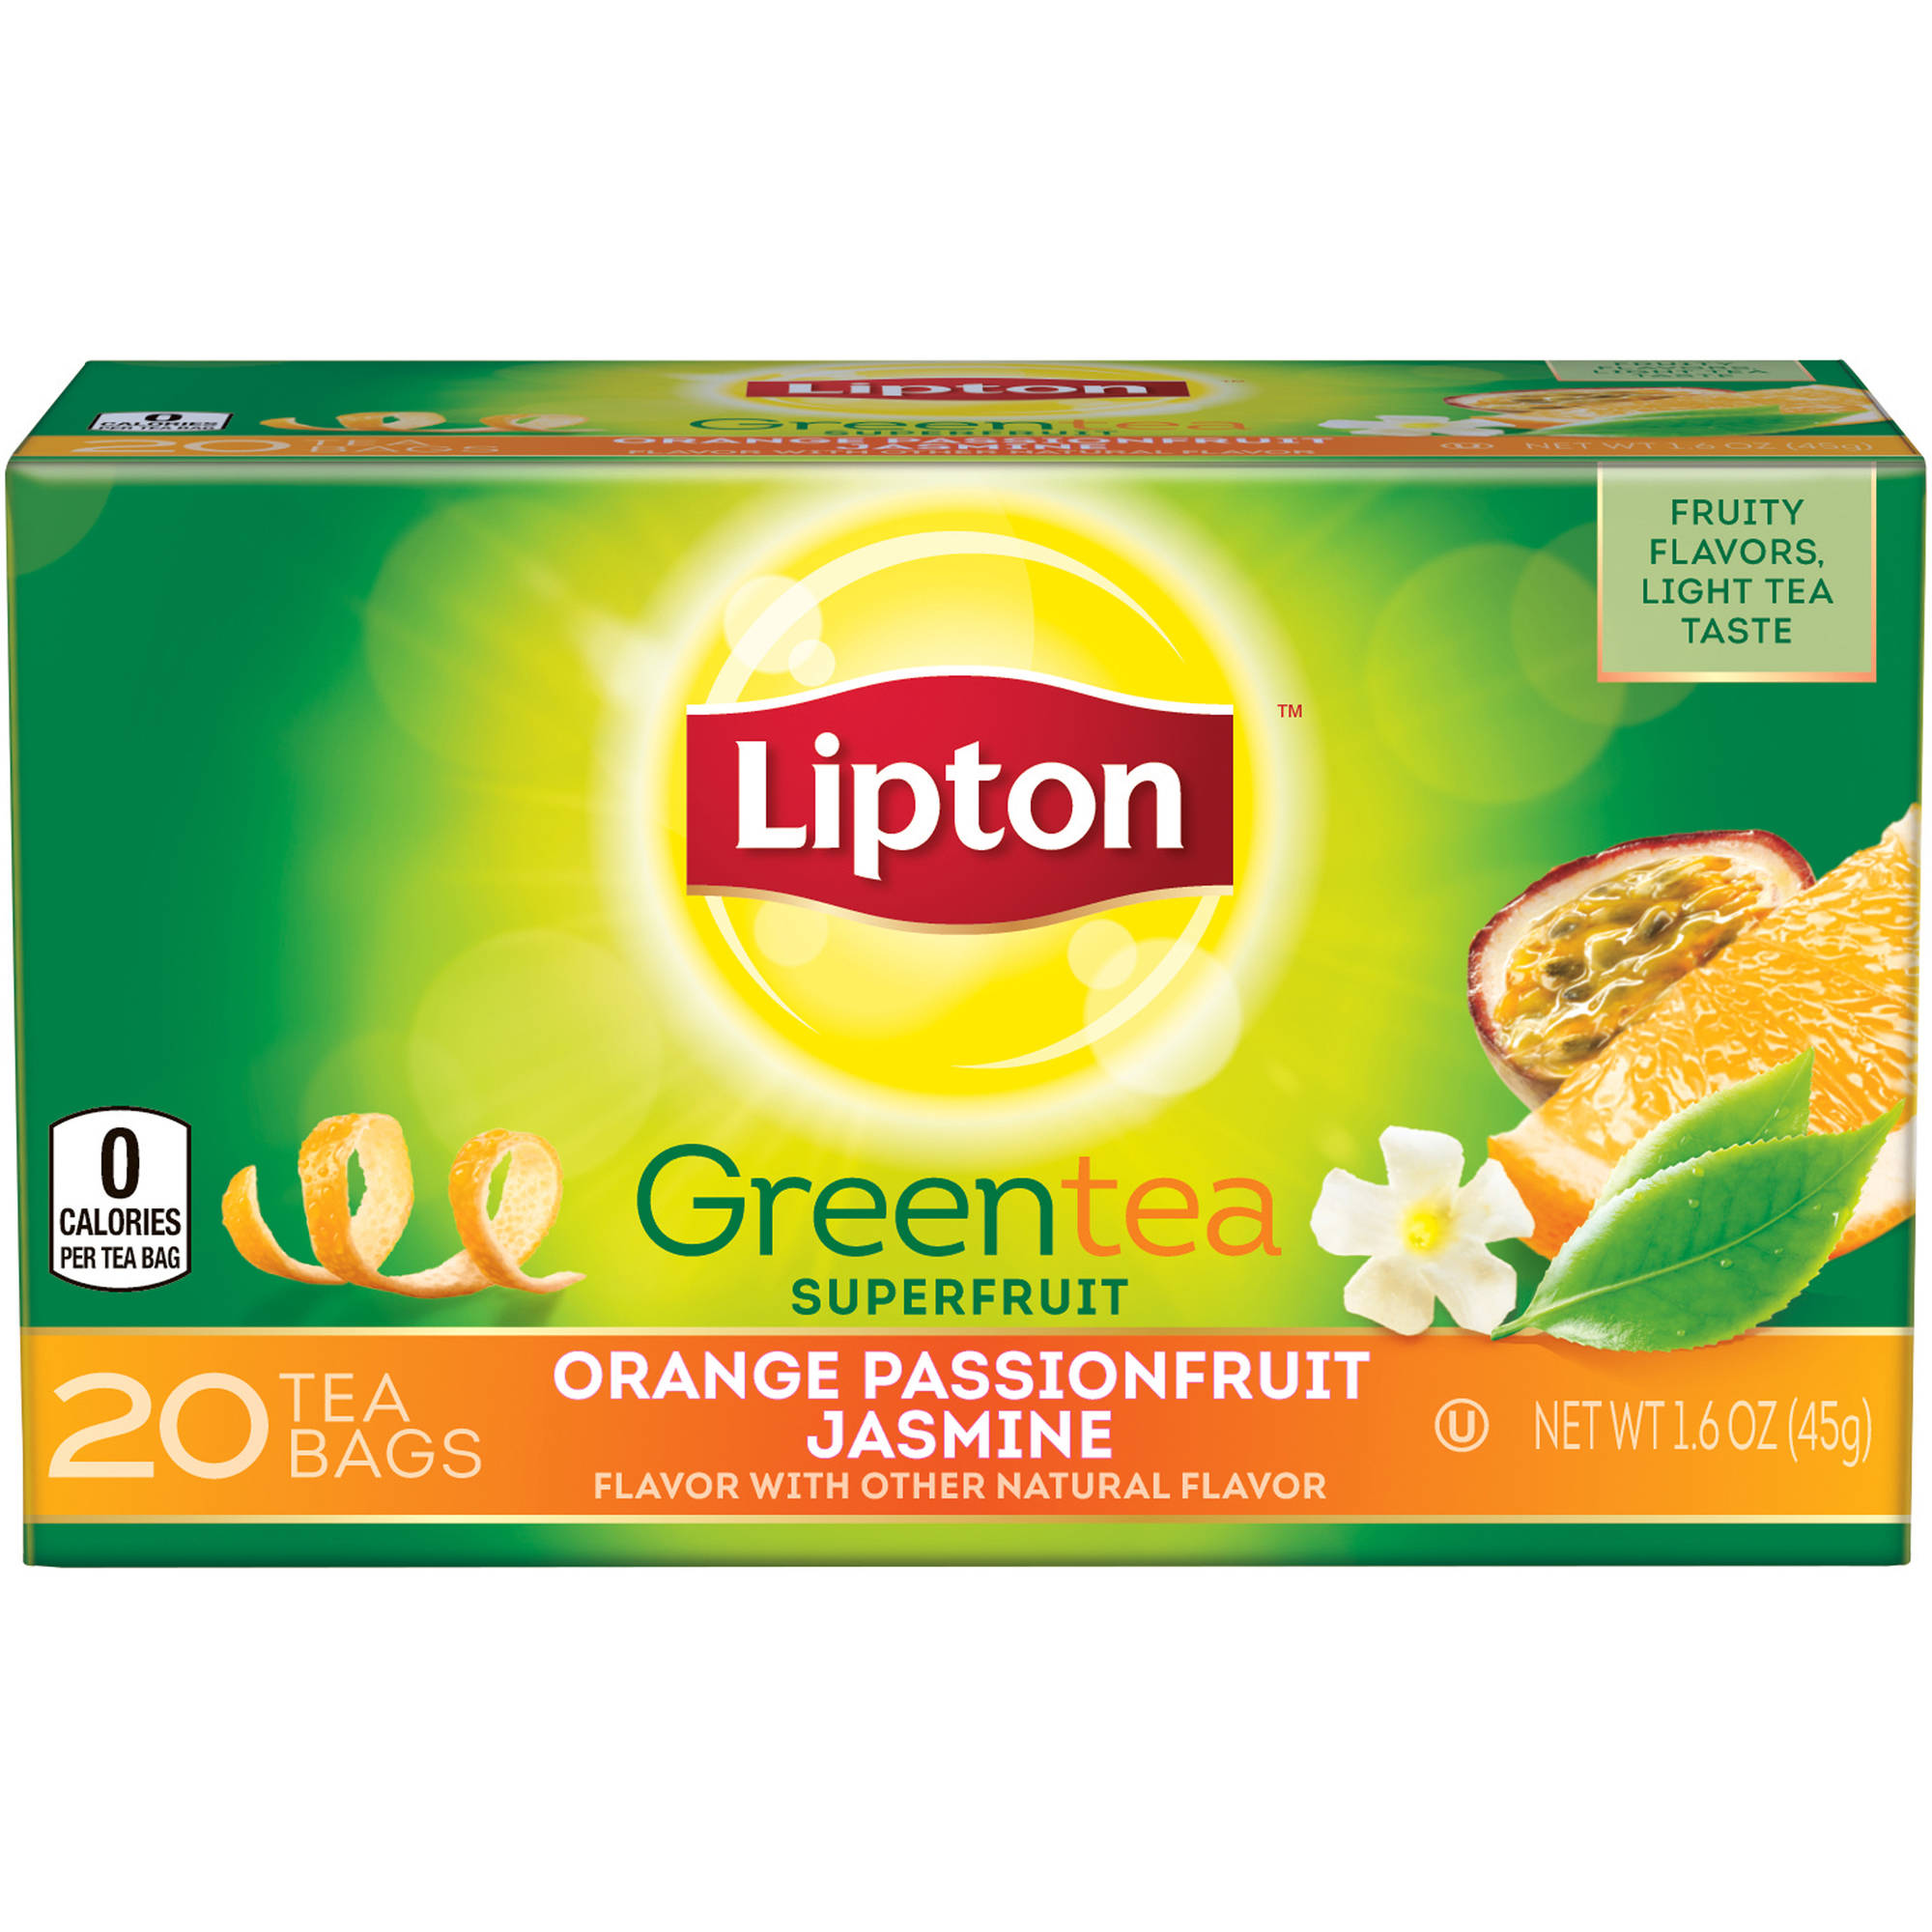 Lipton Orange Passionfruit Jasmine Green Tea, 20 ct